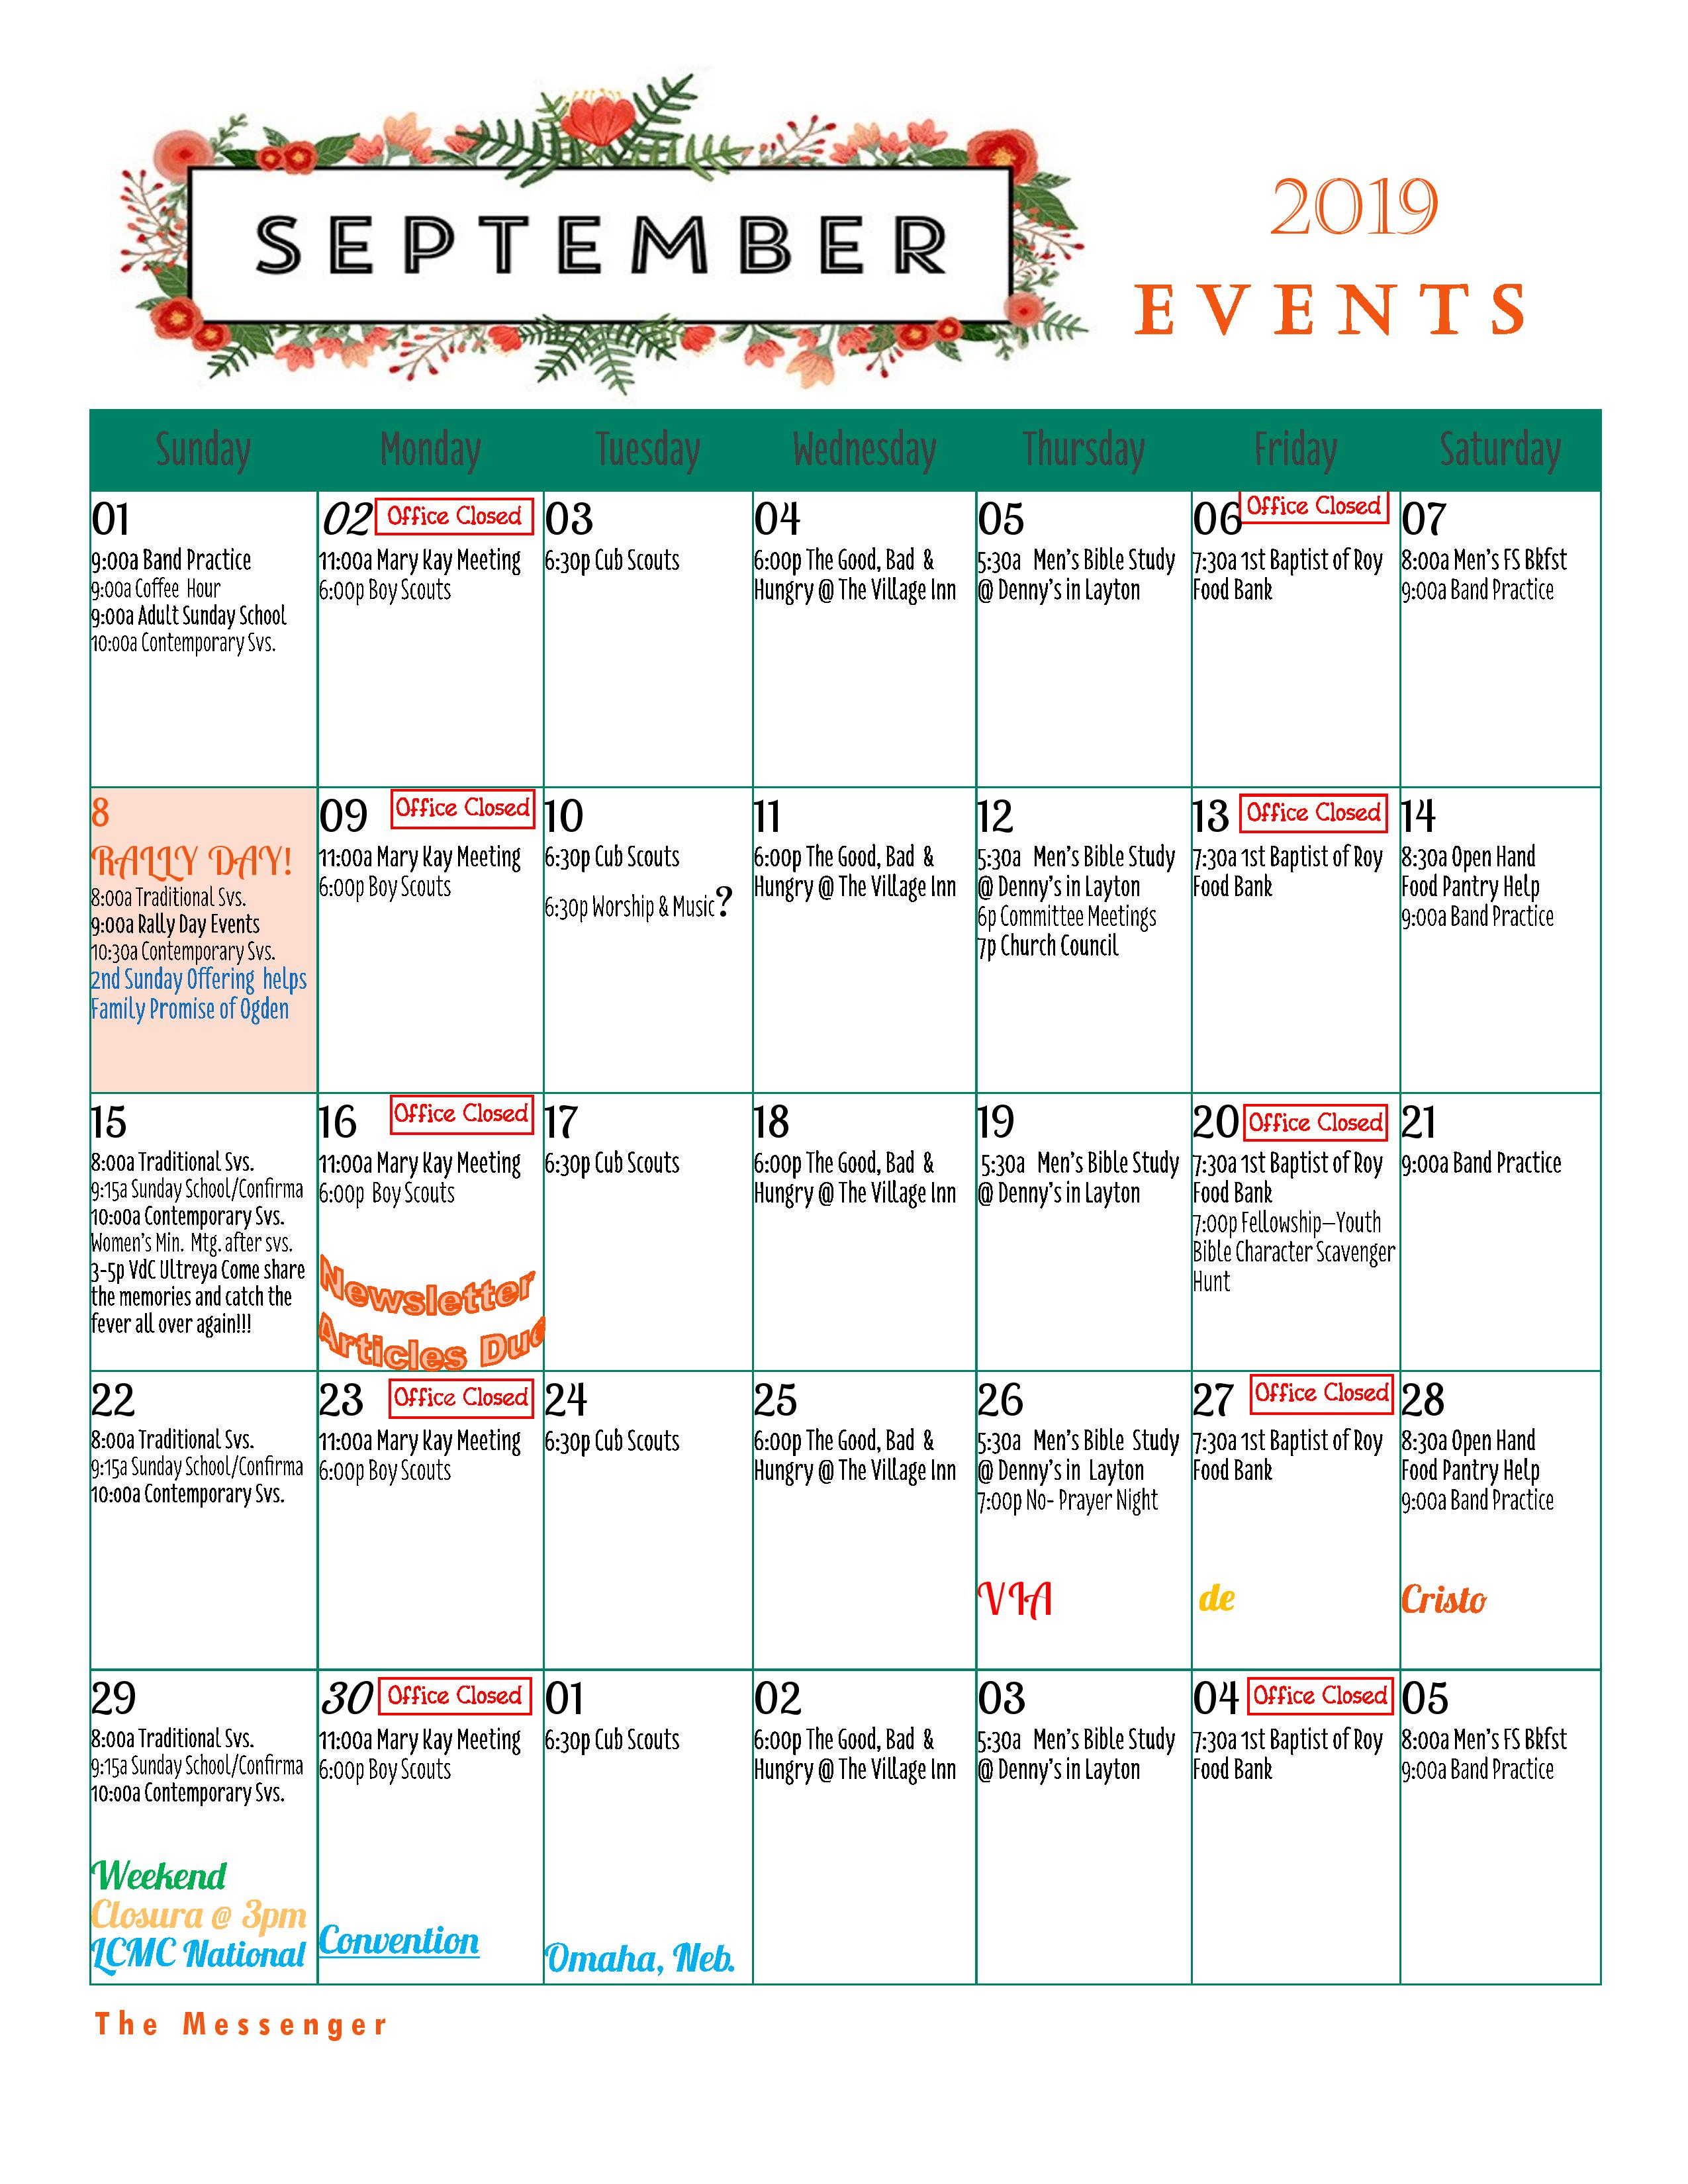 September-page-006